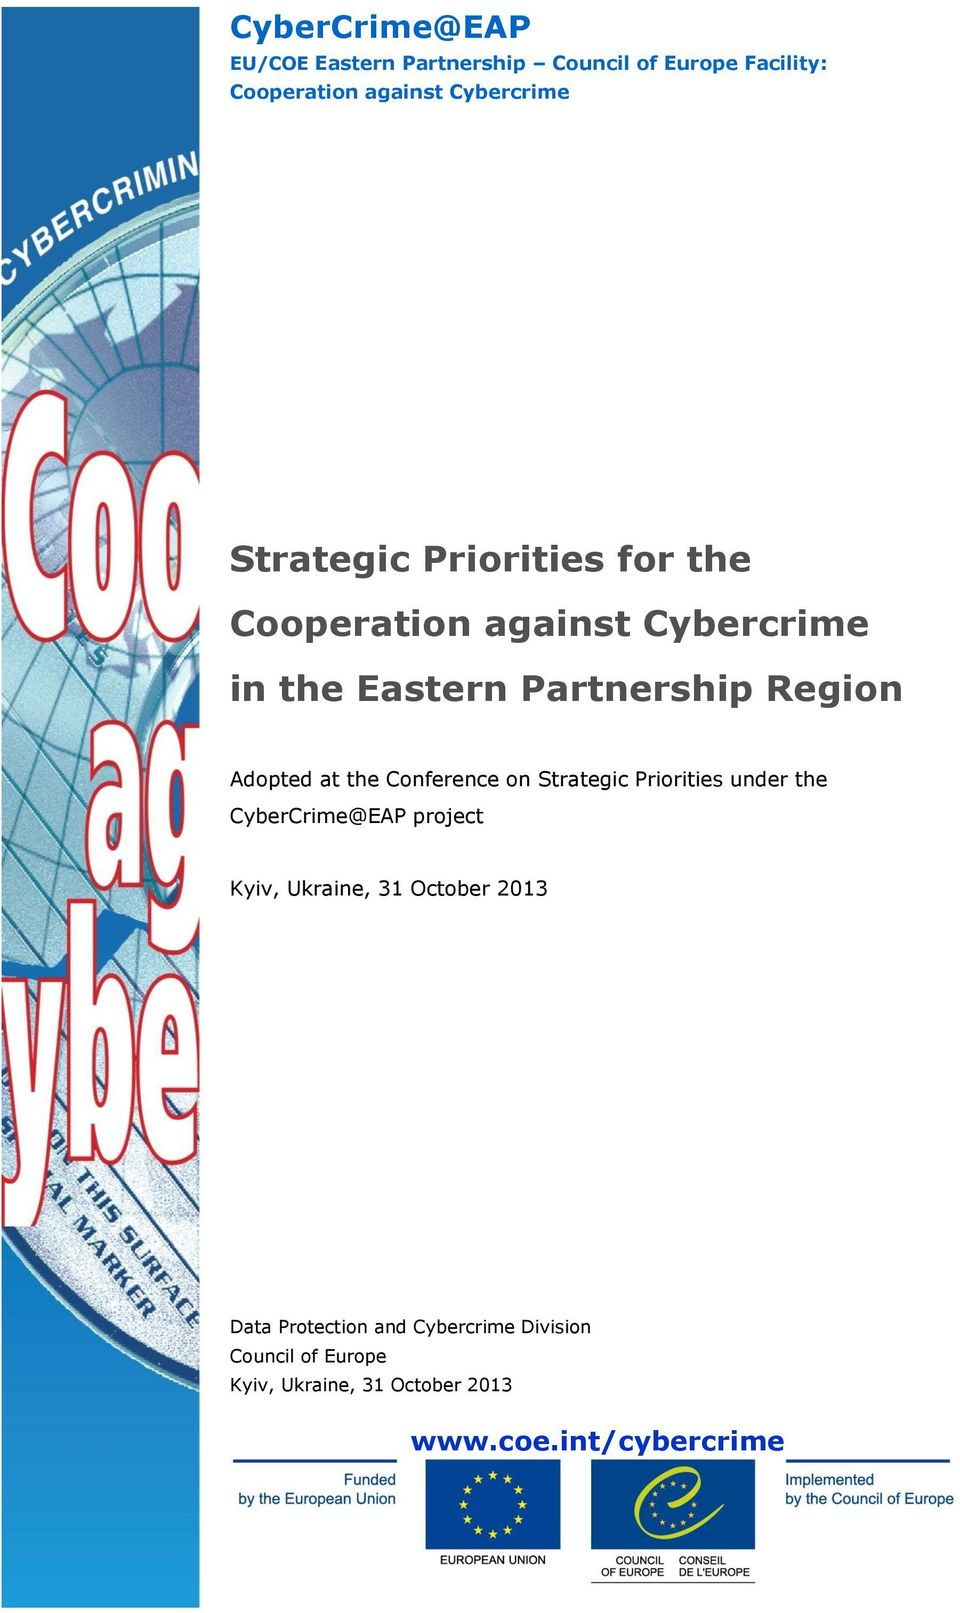 the Conference on Strategic Priorities under the CyberCrime@EAP project Kyiv, Ukraine, 31 October 2013